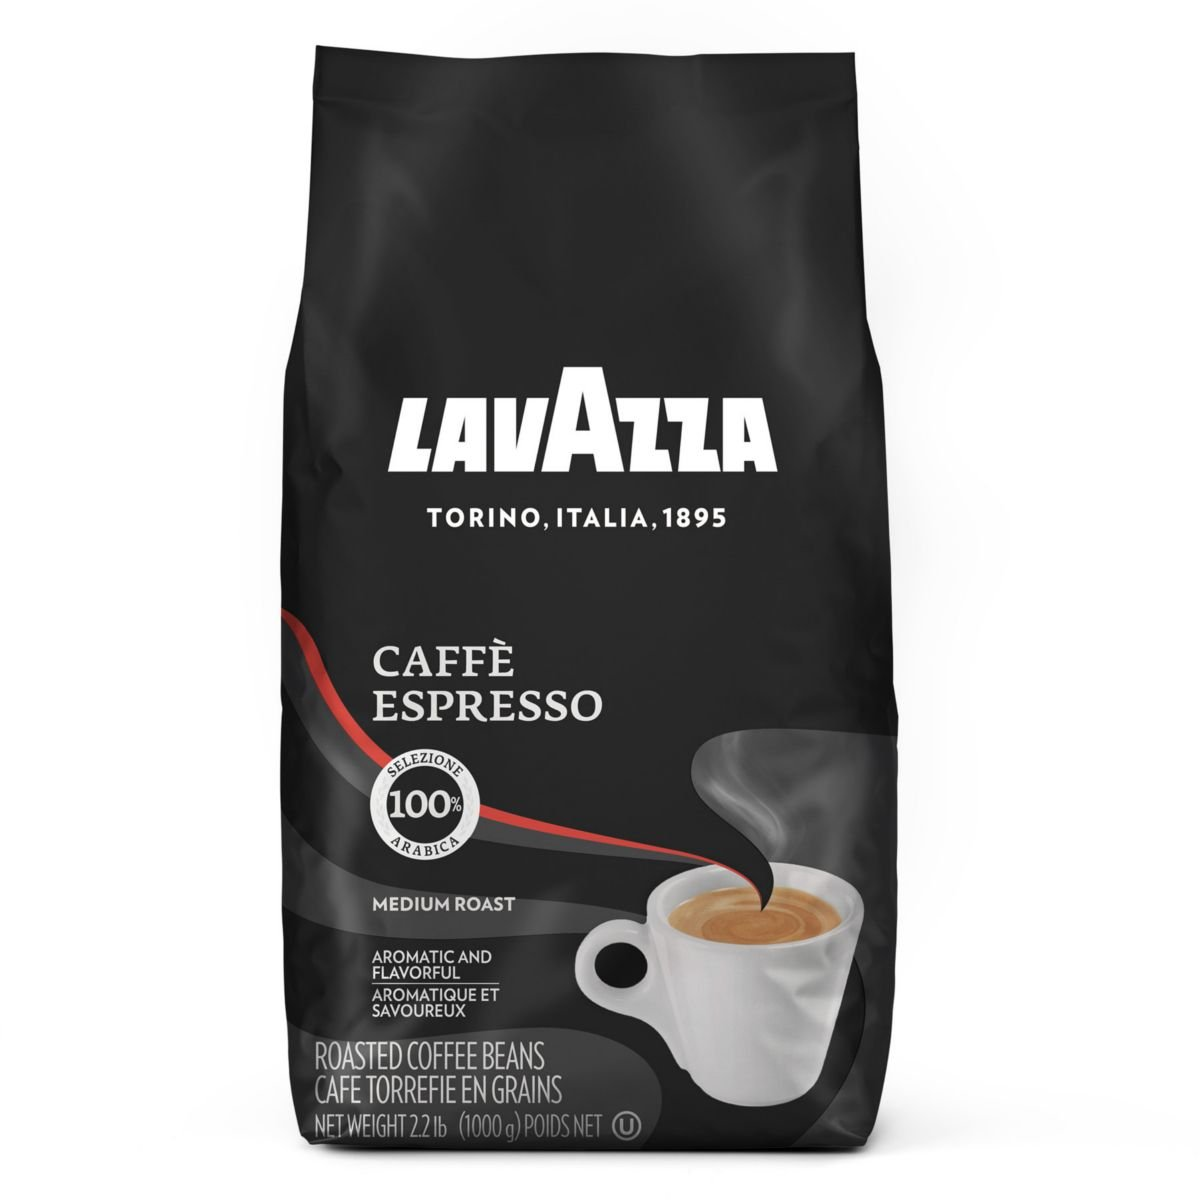 Lavazza Caffe Espresso Whole Bean Coffee Blend, Medium Roast, 2.2-Pound Bag (Pack of 2) by Lavazza